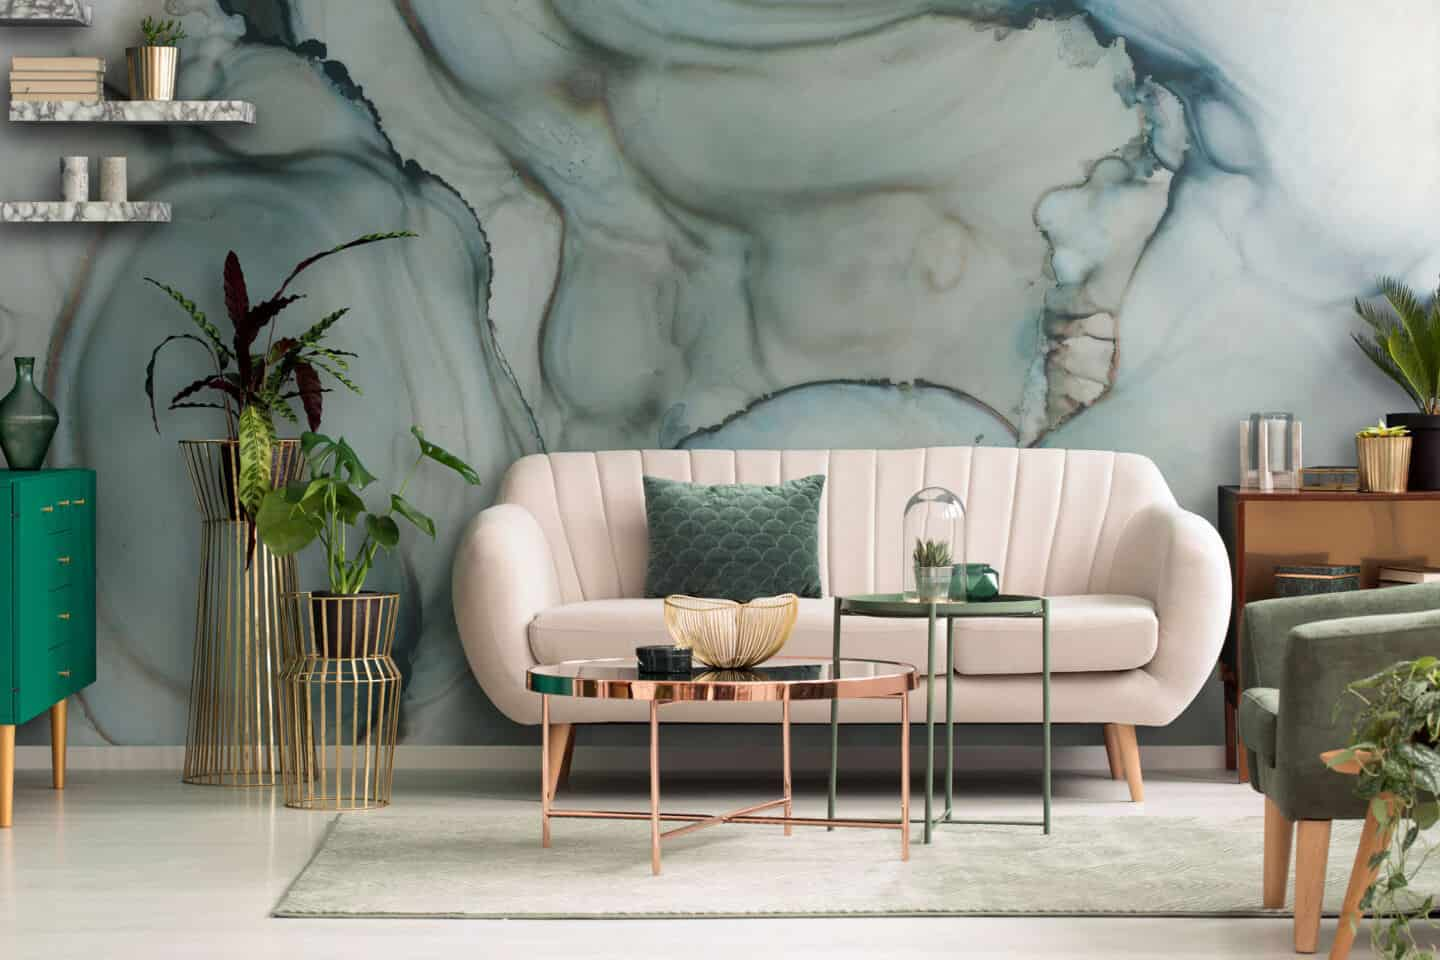 A white sofa on a neutral rug infront of a jade green abstract painted wall mural.